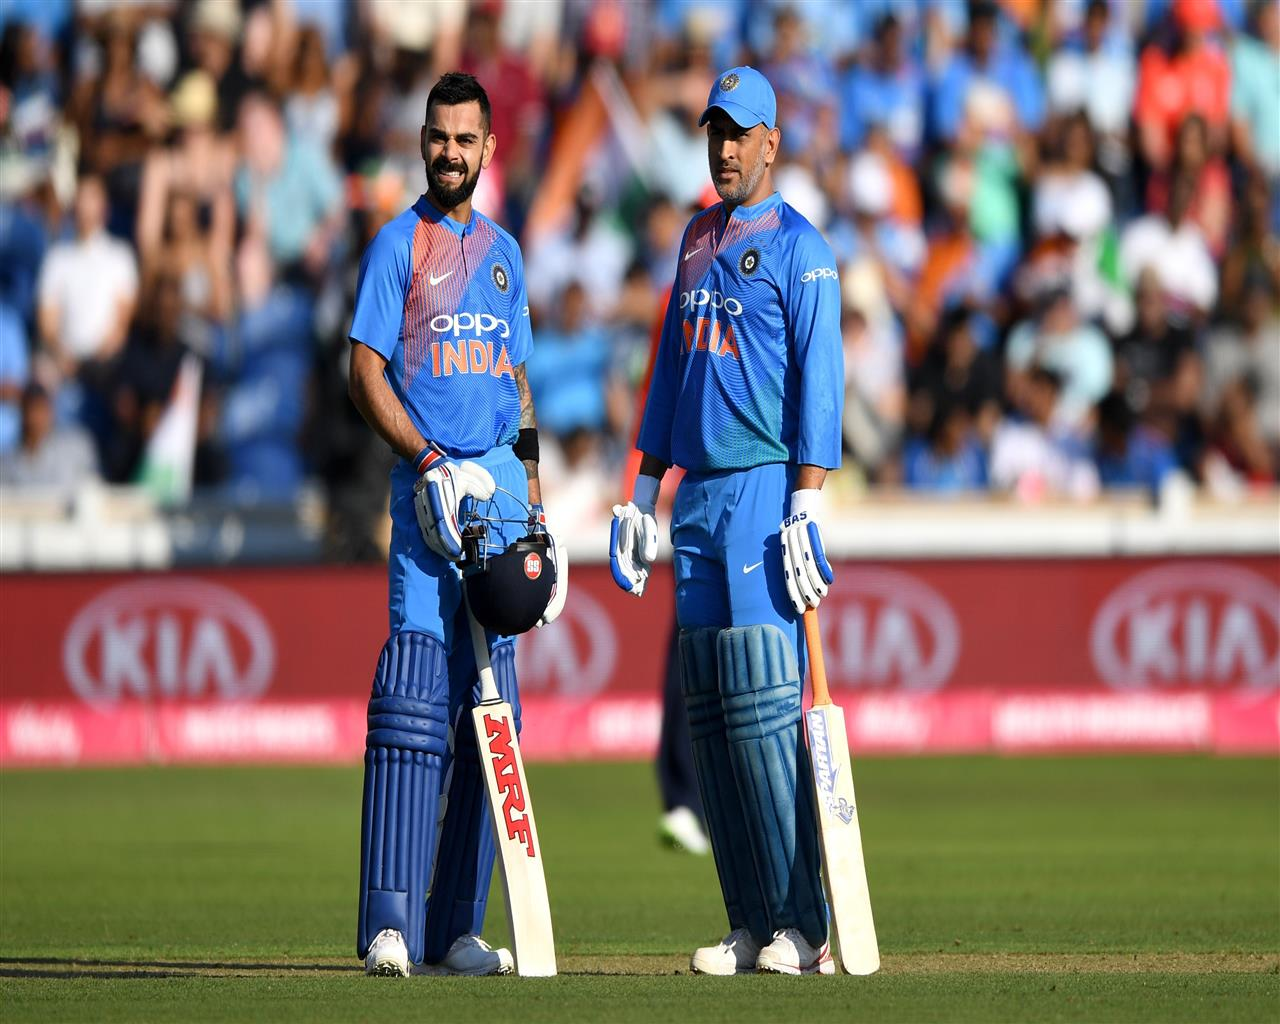 1280x1024 Virat Kohli and MS Dhoni in Cricket Worldcup 2019 4K Wallpaper